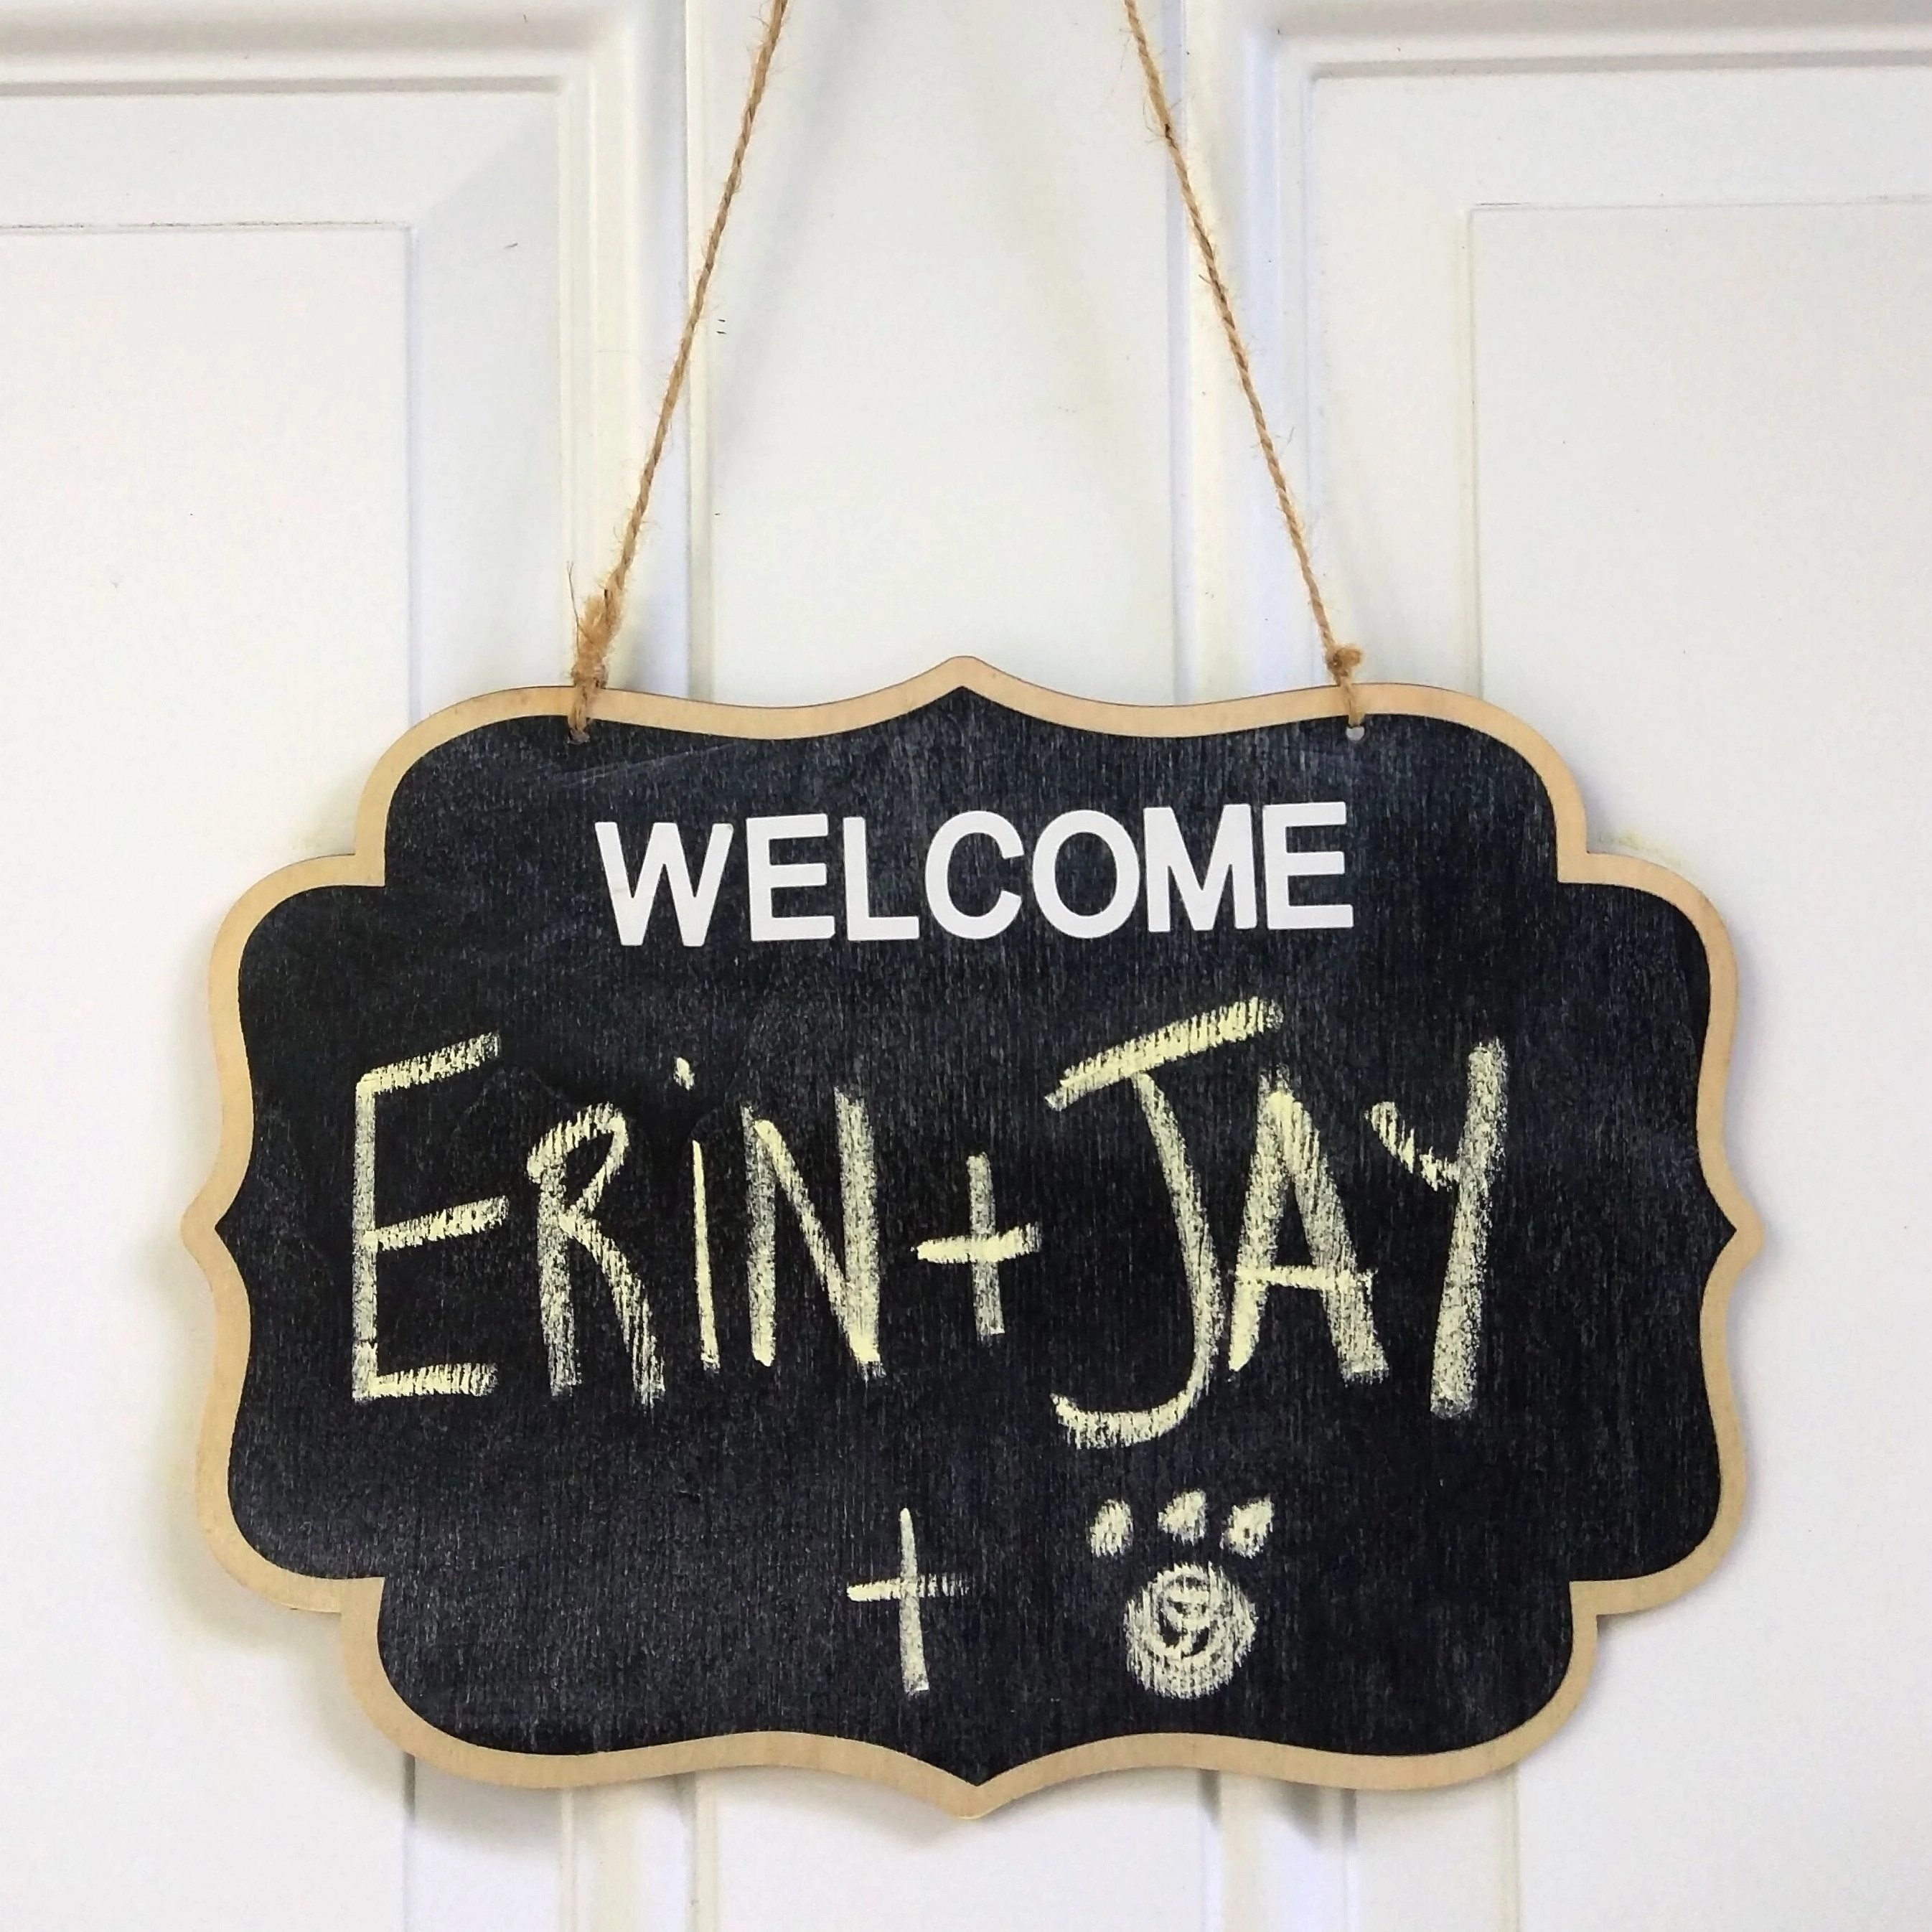 """A sign hangs to welcome us to our new Airbnb home: """"WELCOME! Erin + Jay + Puppy"""""""